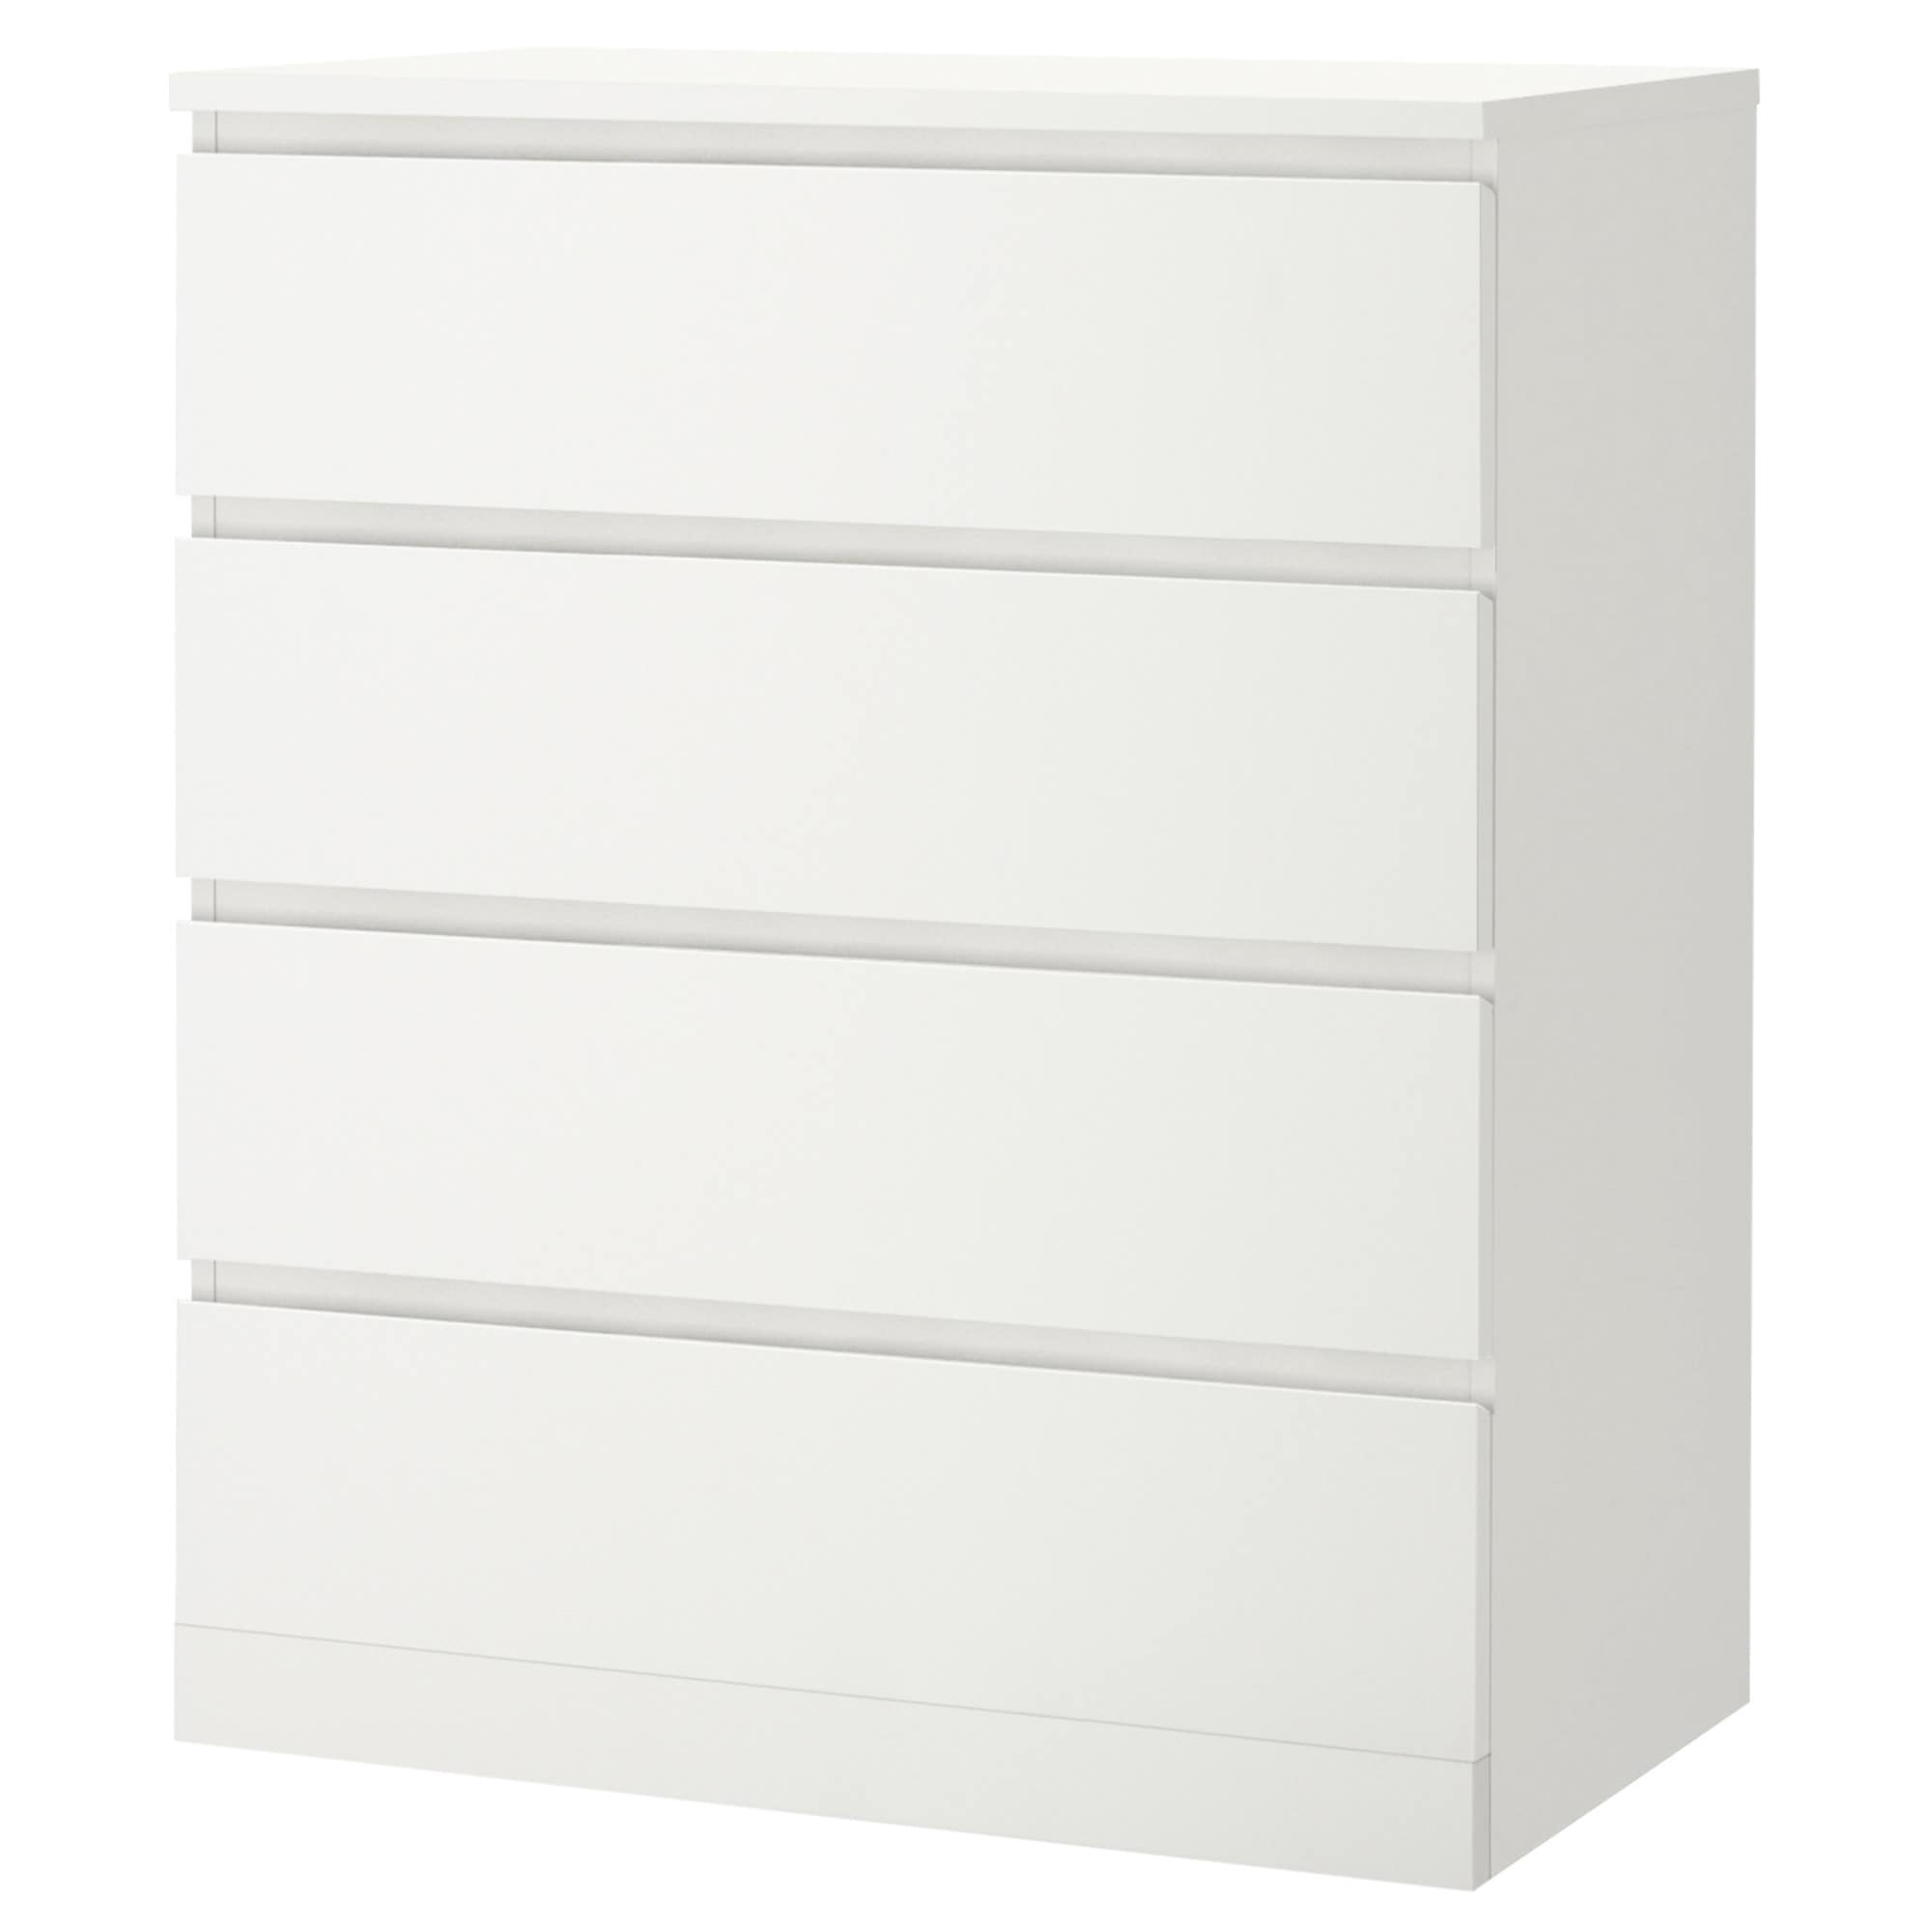 Inter IKEA Systems B V  1999   2017   Privacy Policy. MALM 4 drawer chest   white   IKEA